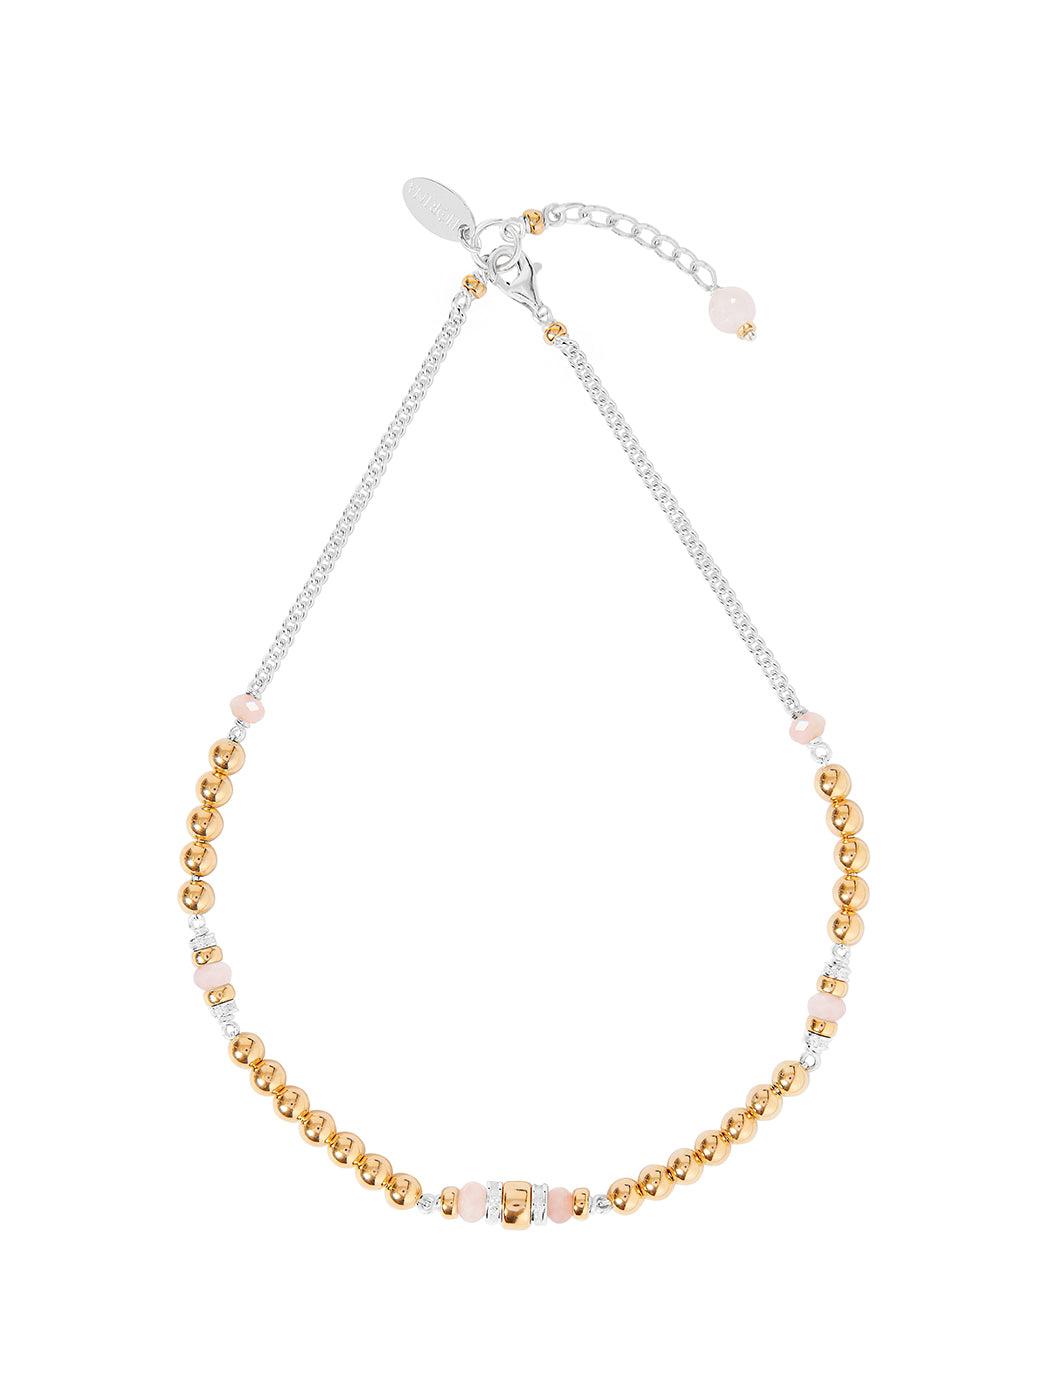 Fiorina Jewellery Jolie Gold Choker Small Morganite